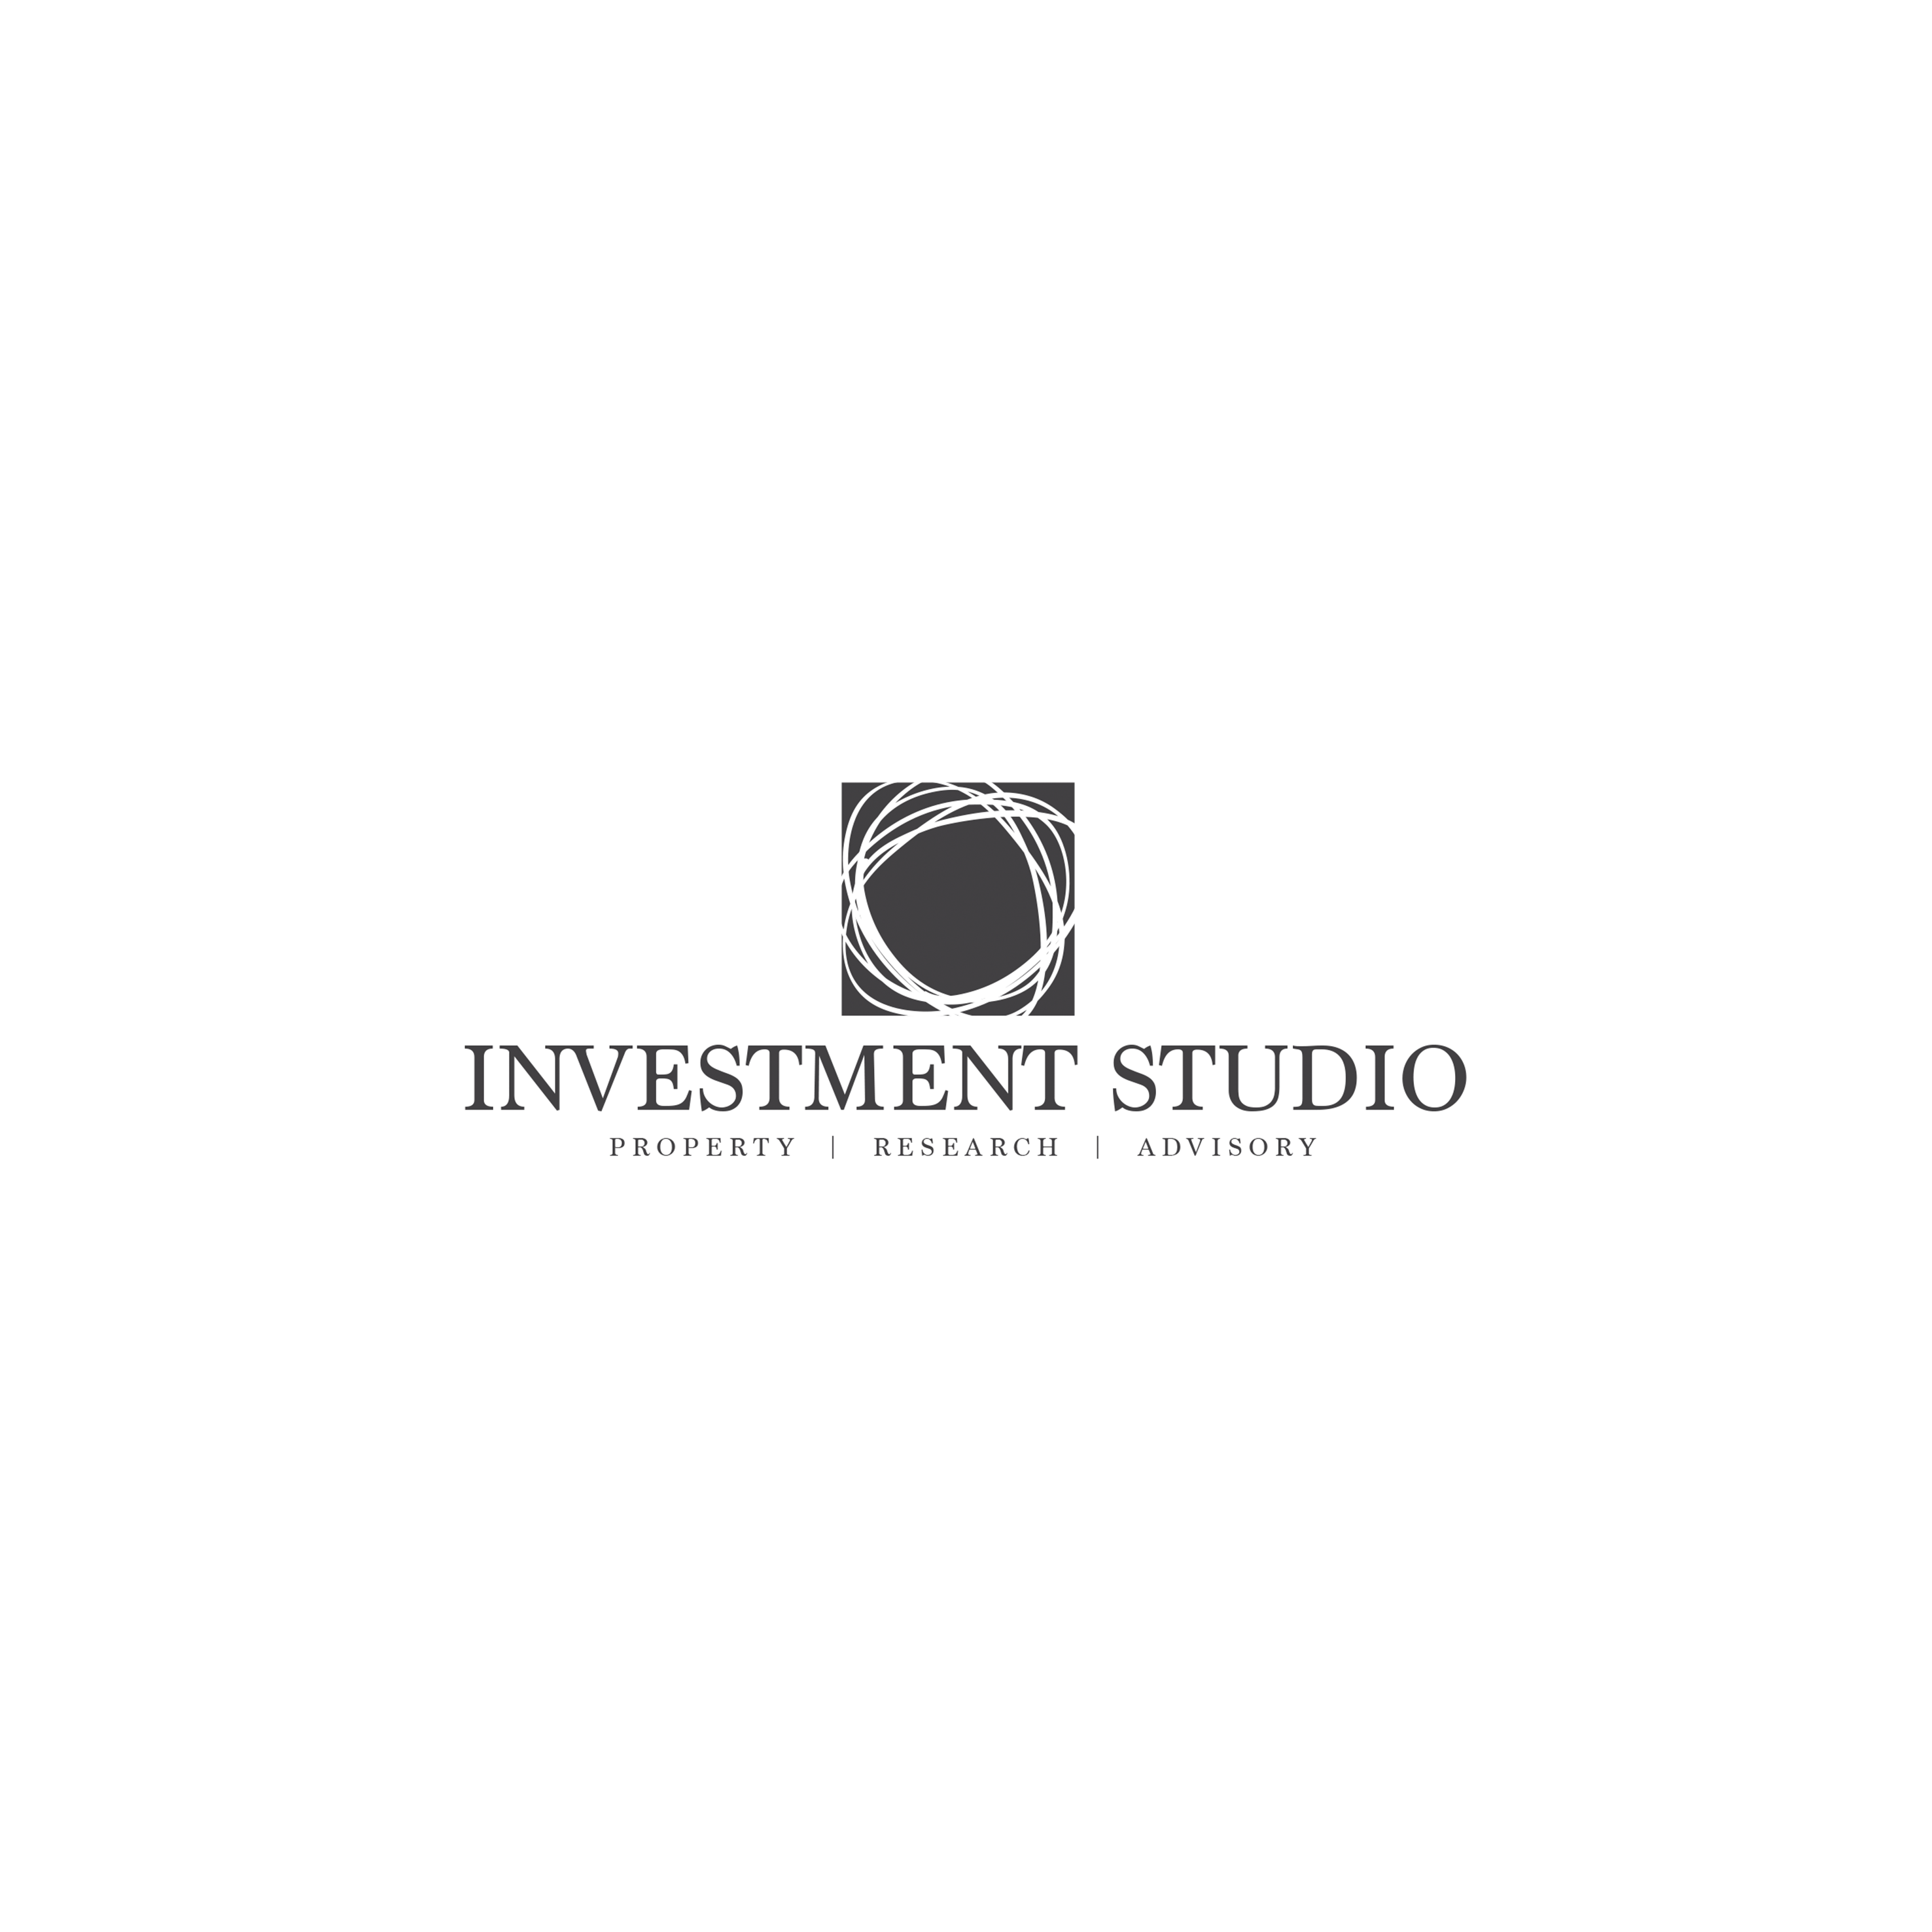 Investment Studio Logo Design